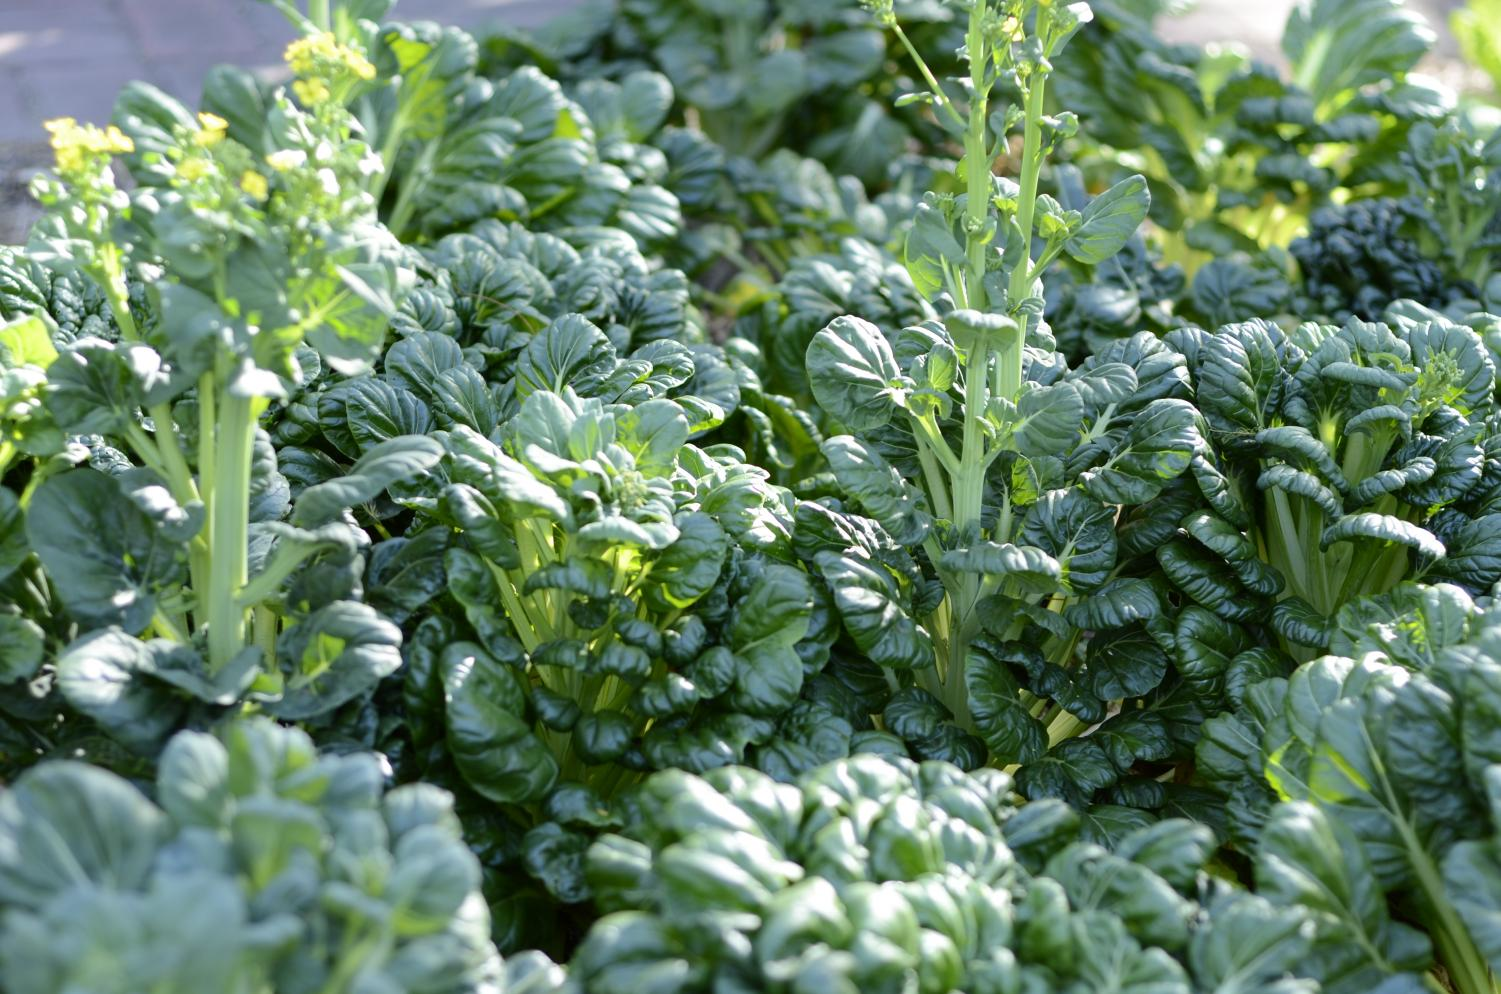 An Epicurious Garden bed packed with Asian greens.